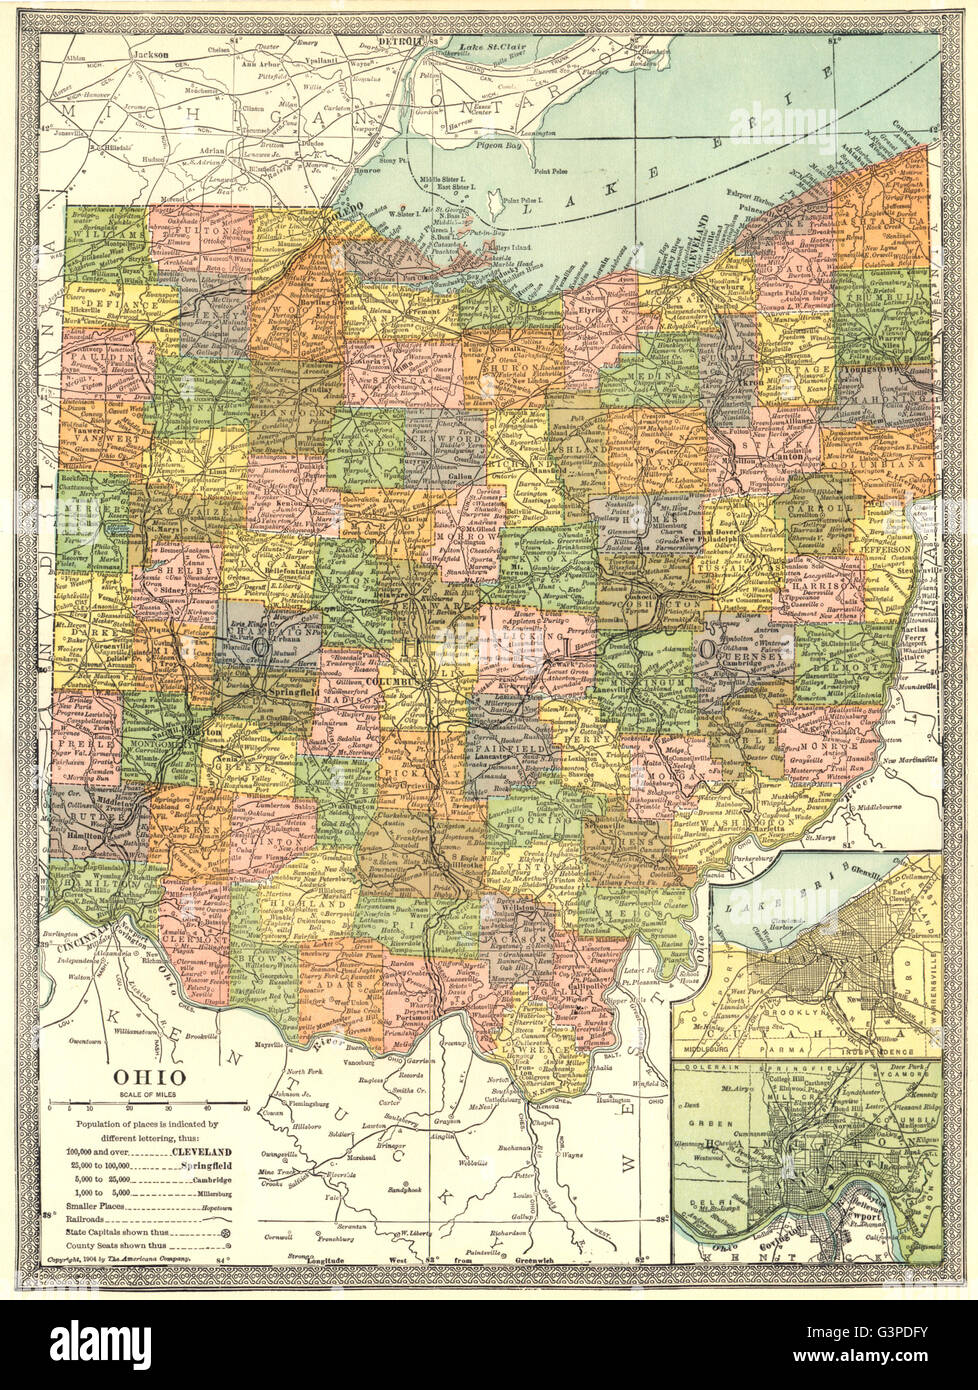 Ohio Map With Counties Land O Lakes Florida Map - Ohio map counties